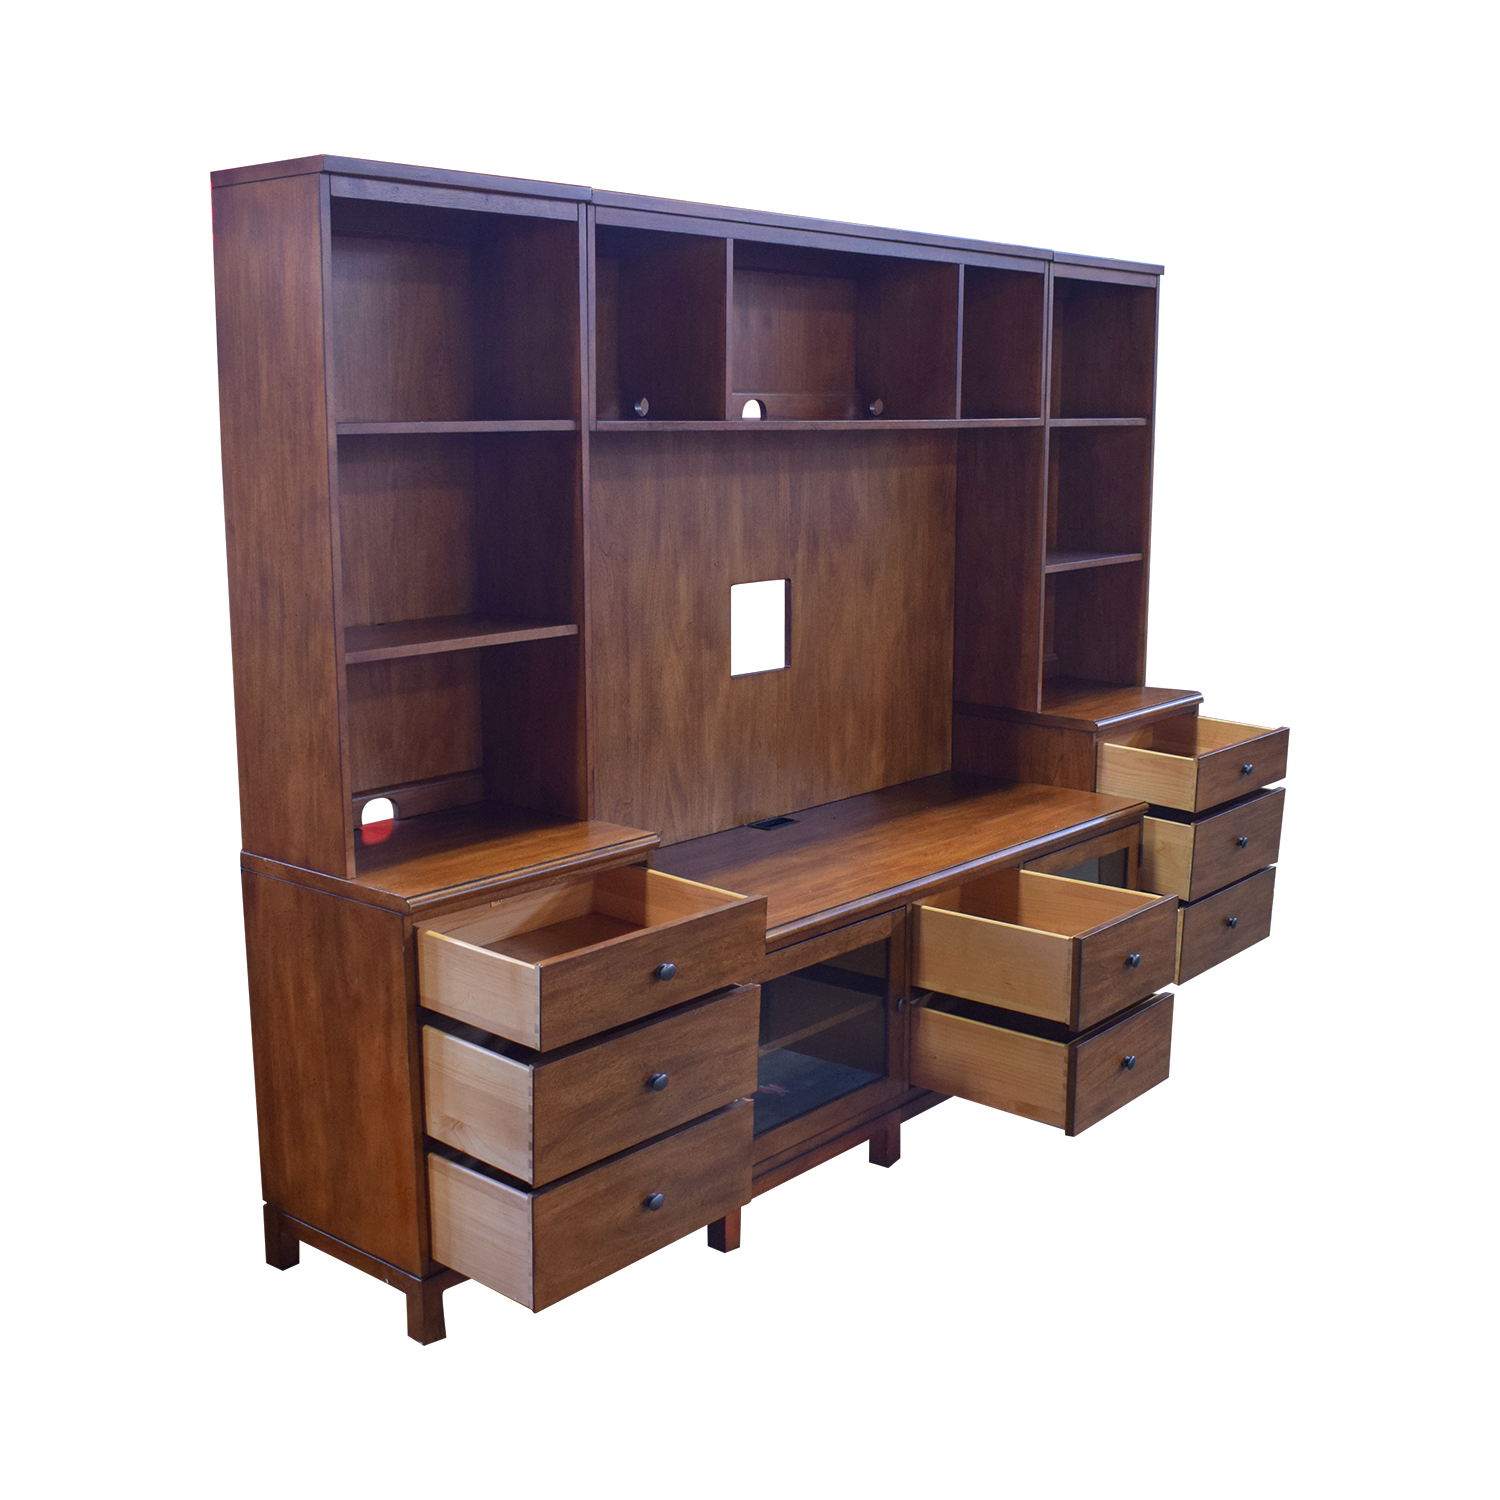 Ethan Allen Ethan Allen Wood Media Center with Drawers and Shelves Media Units